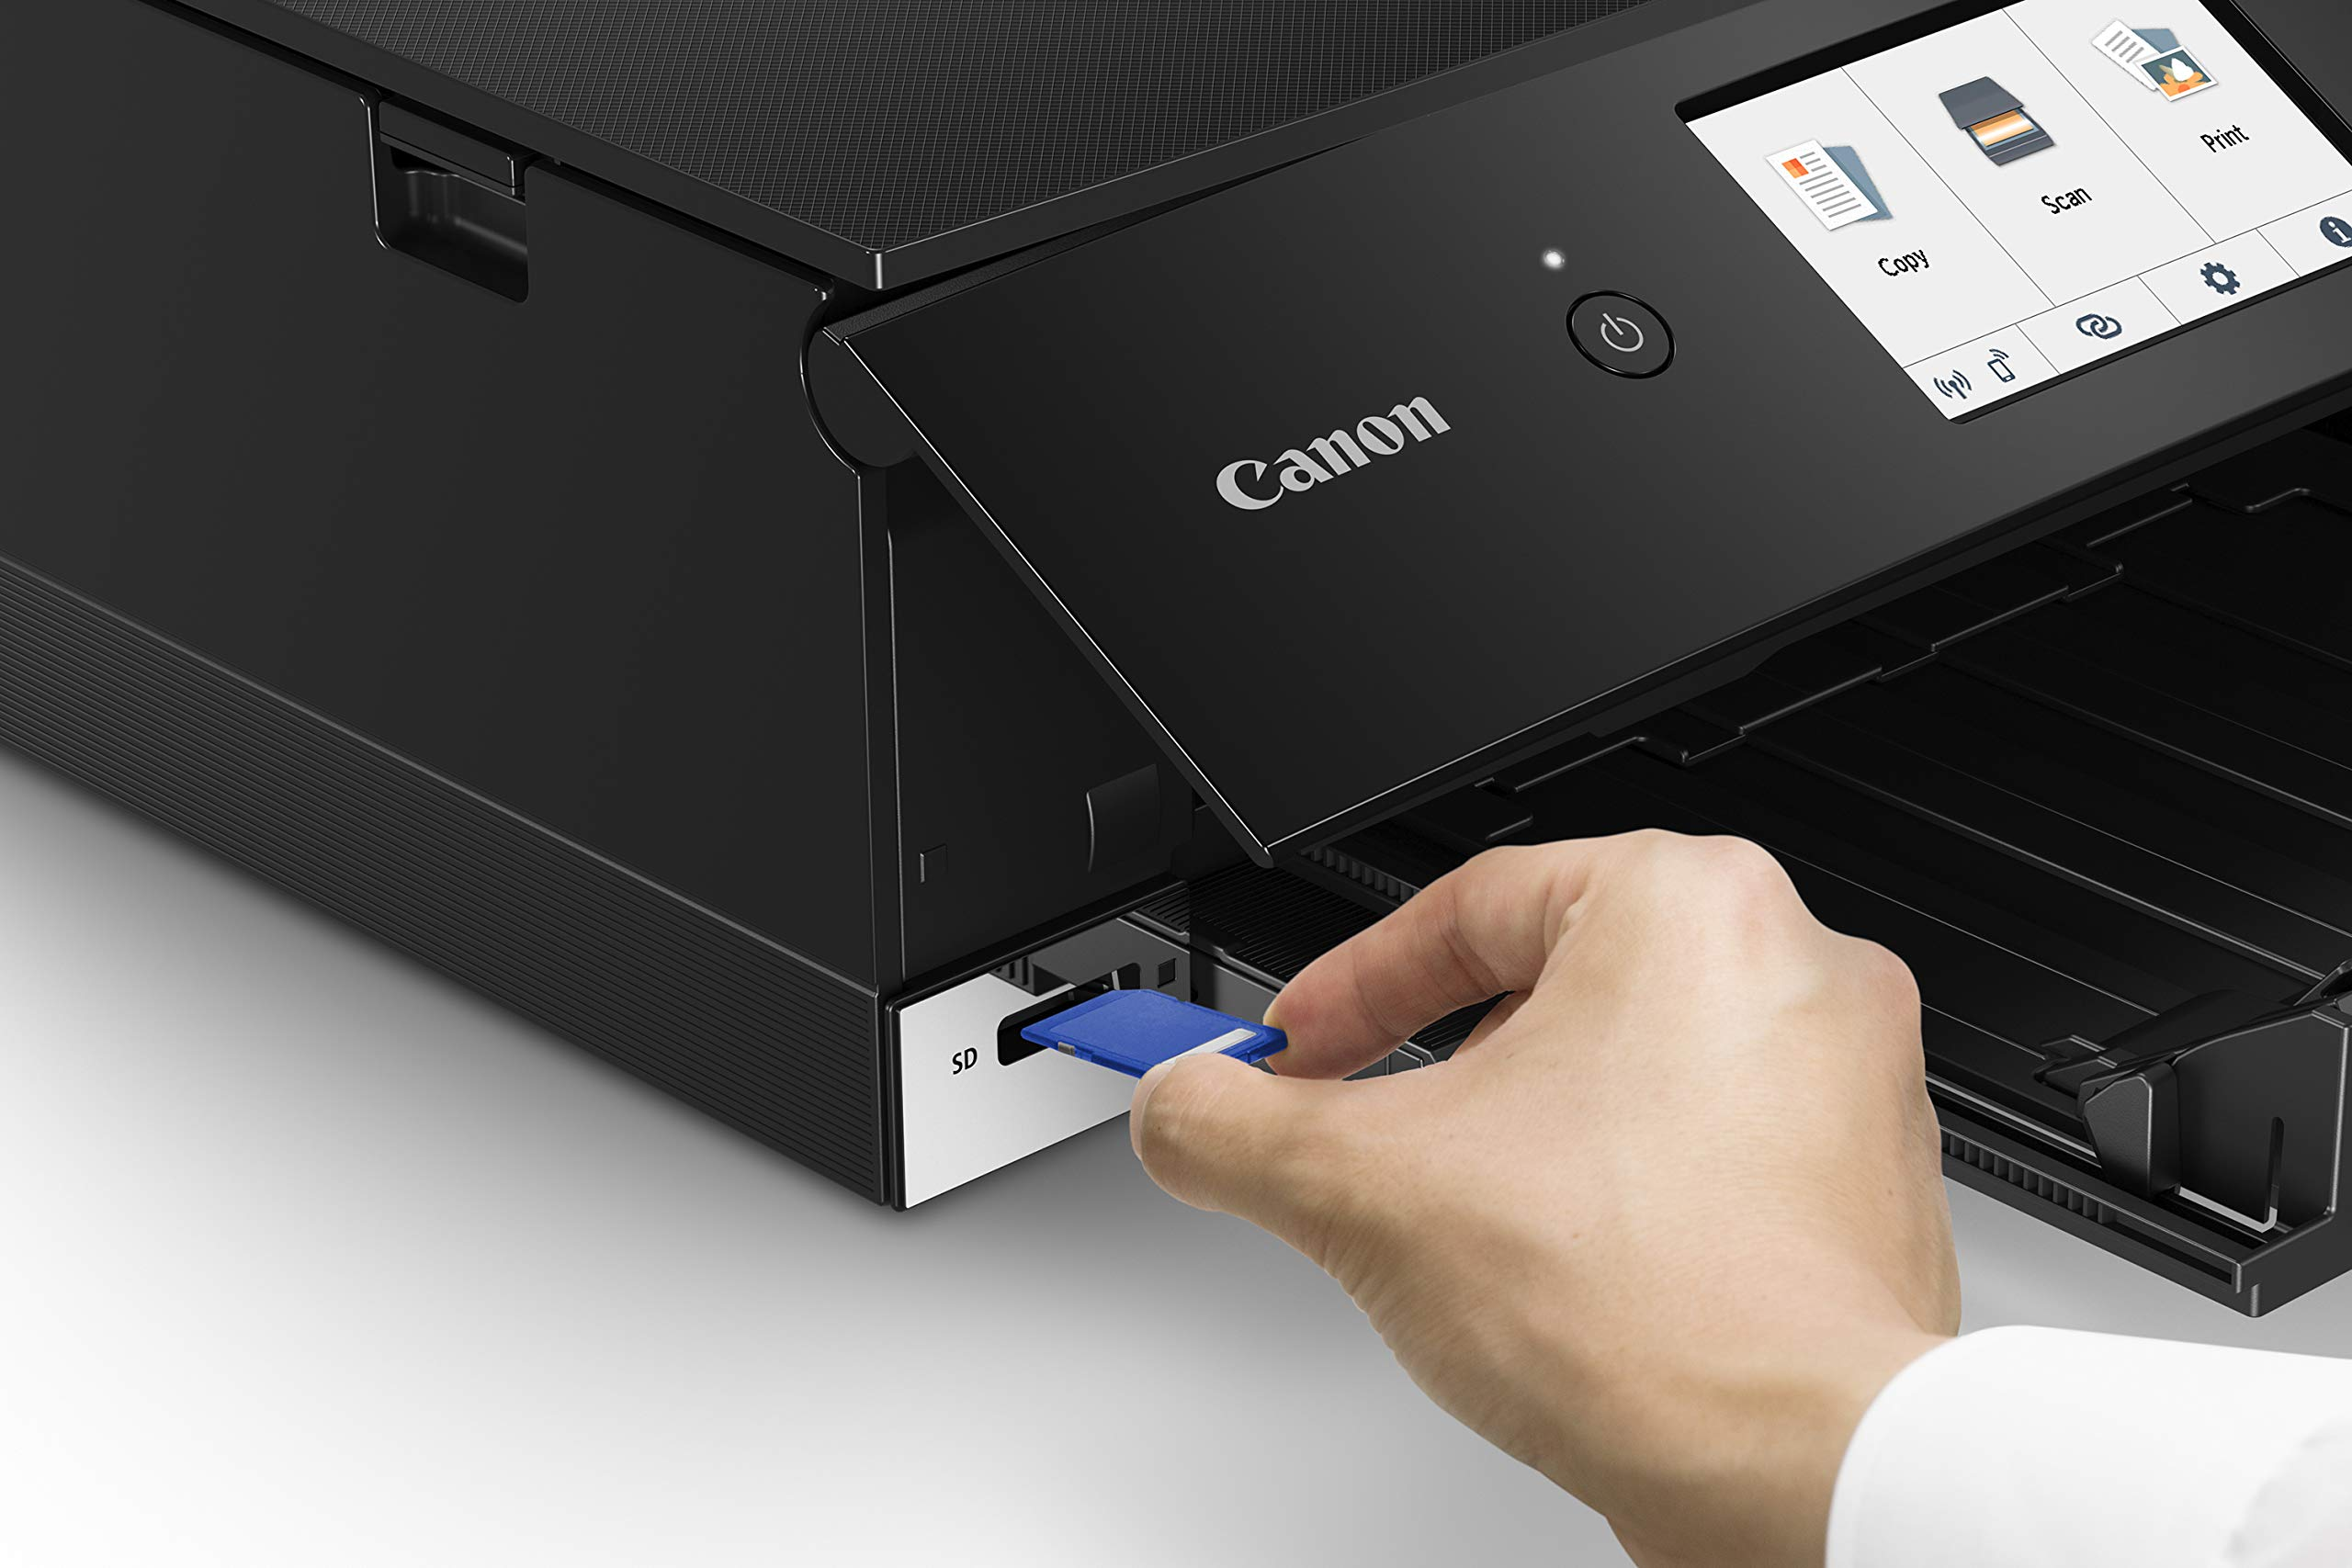 Canon TS8220 Wireless All in One Photo Printer with Scannier and Copier, Mobile Printing, Black by Canon (Image #5)